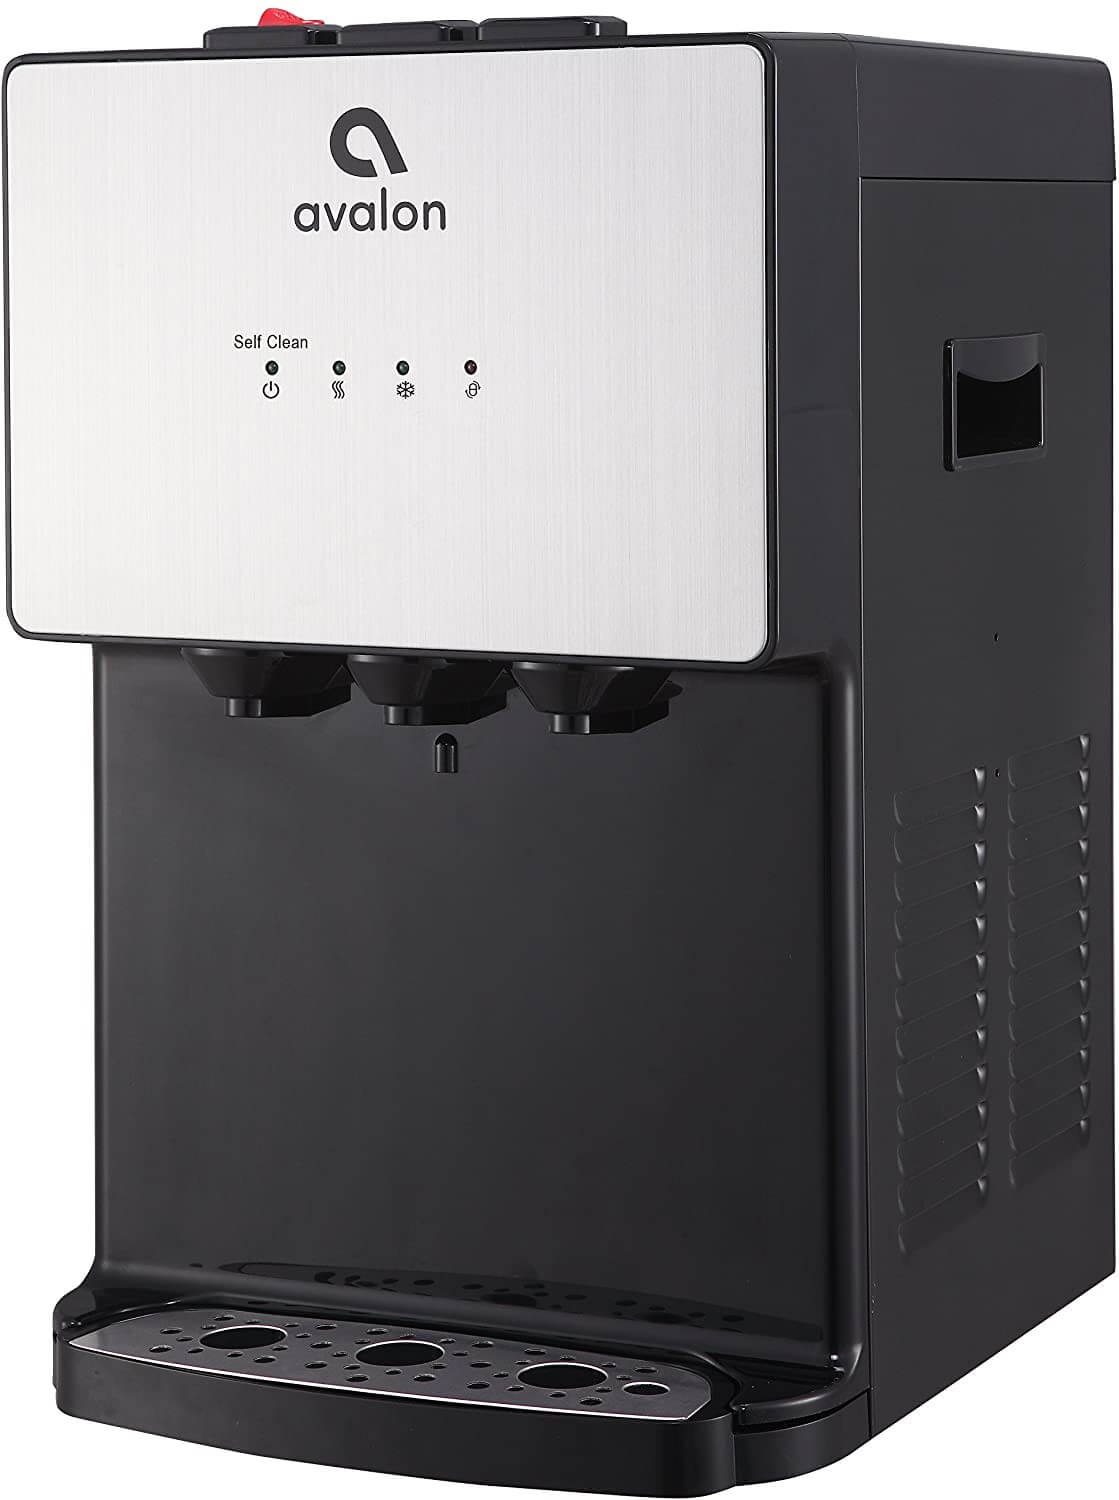 Avalon A12 Countertop Water Dispenser – Best Three Temperature Settings